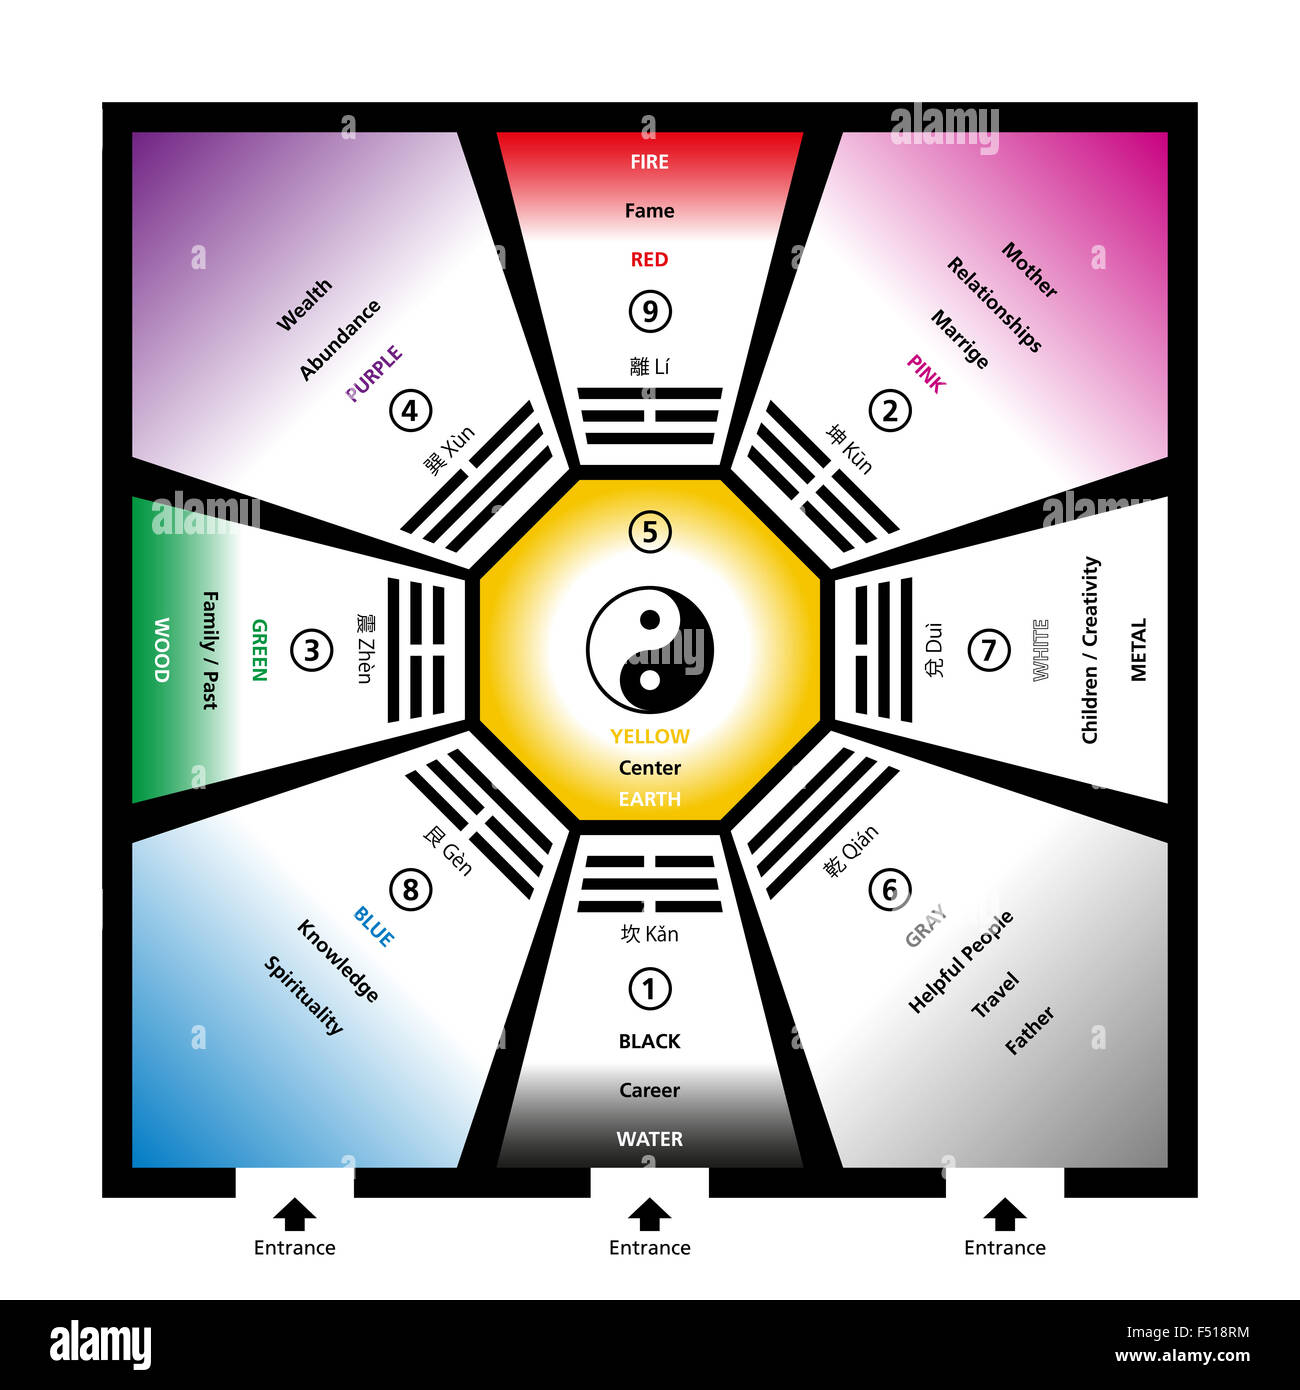 Schlafzimmer Feng Shui Himmelsrichtung Feng Shui Bagua Trigrams With The Five Elements And Their